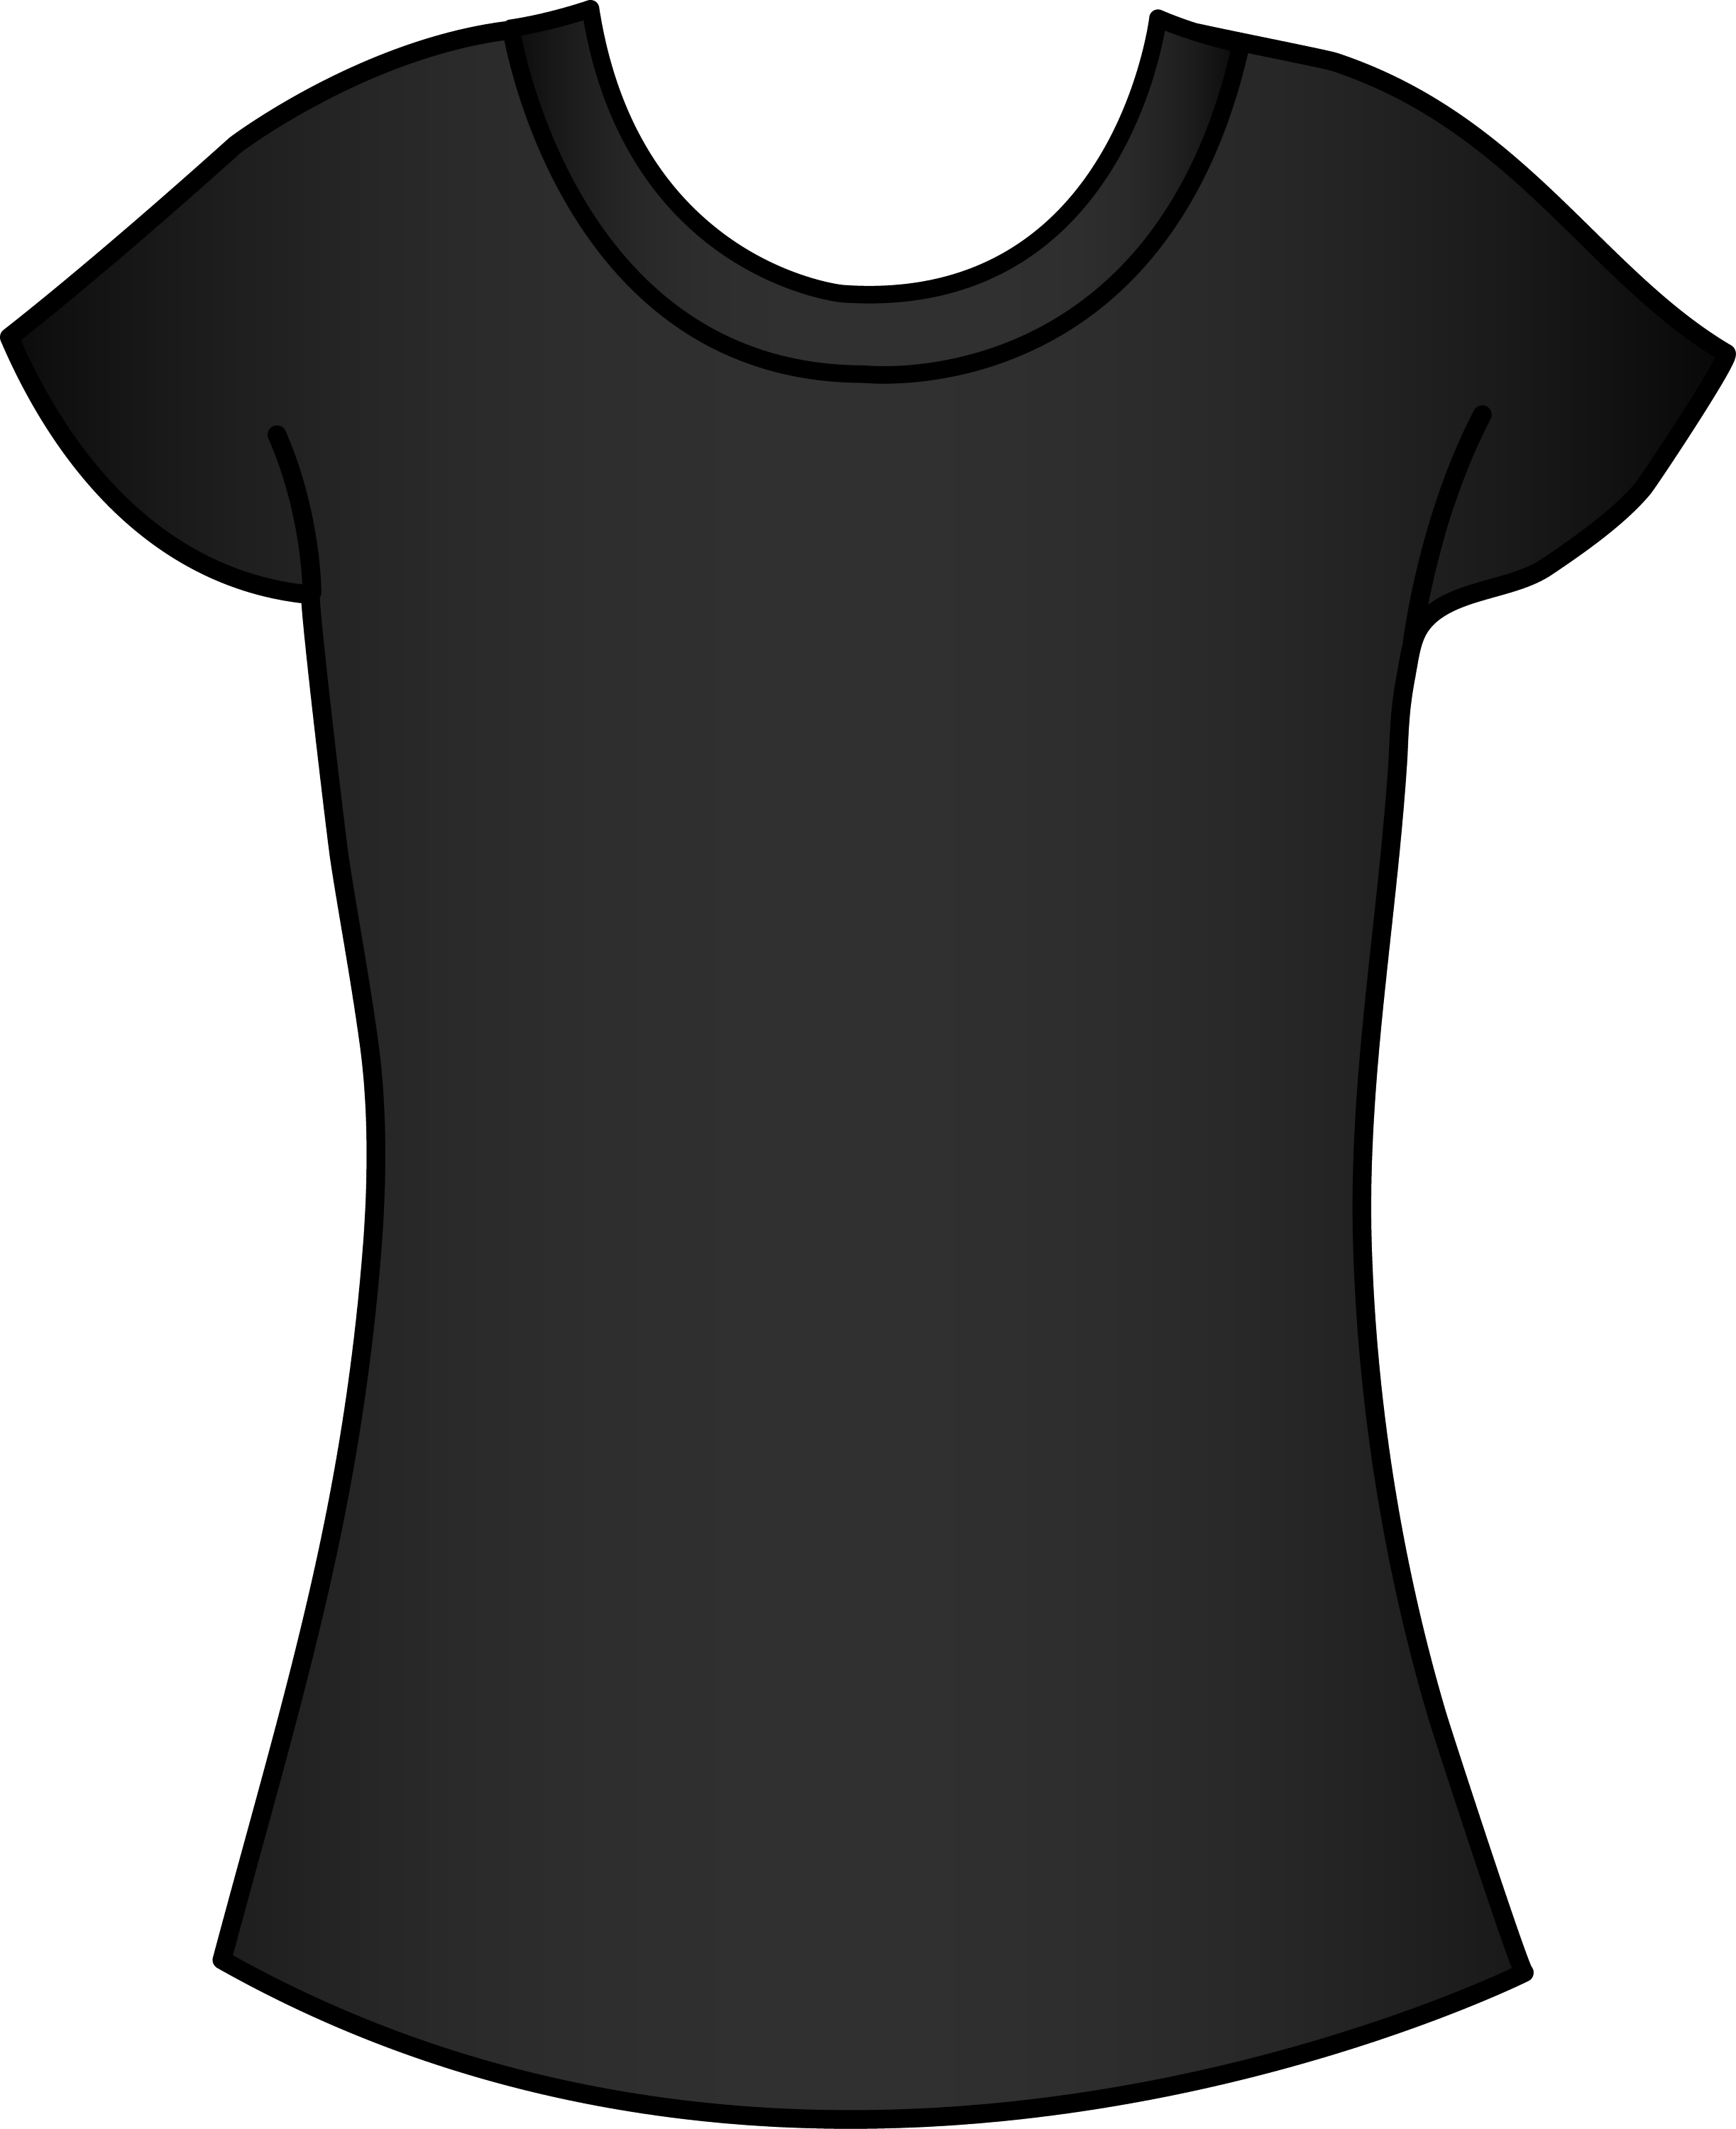 Black t shirt vector - Womens Black T Shirt Template Free Clip Art